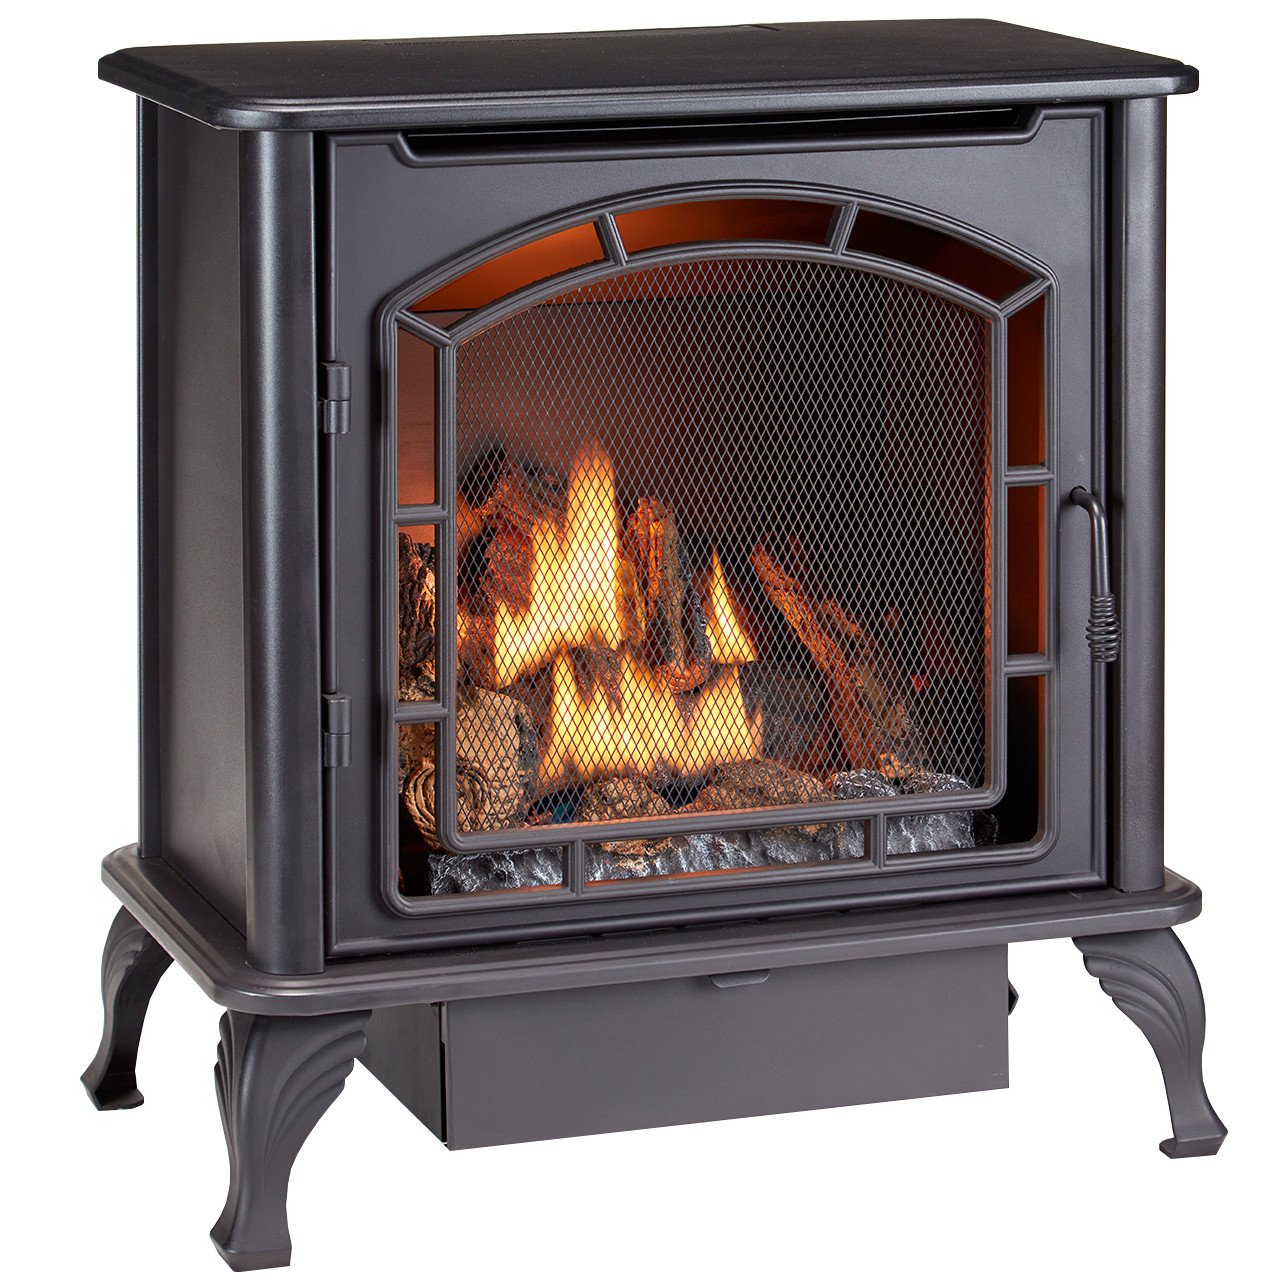 Duluth Forge Dual Fuel Ventless Gas Stove Model Df25sms